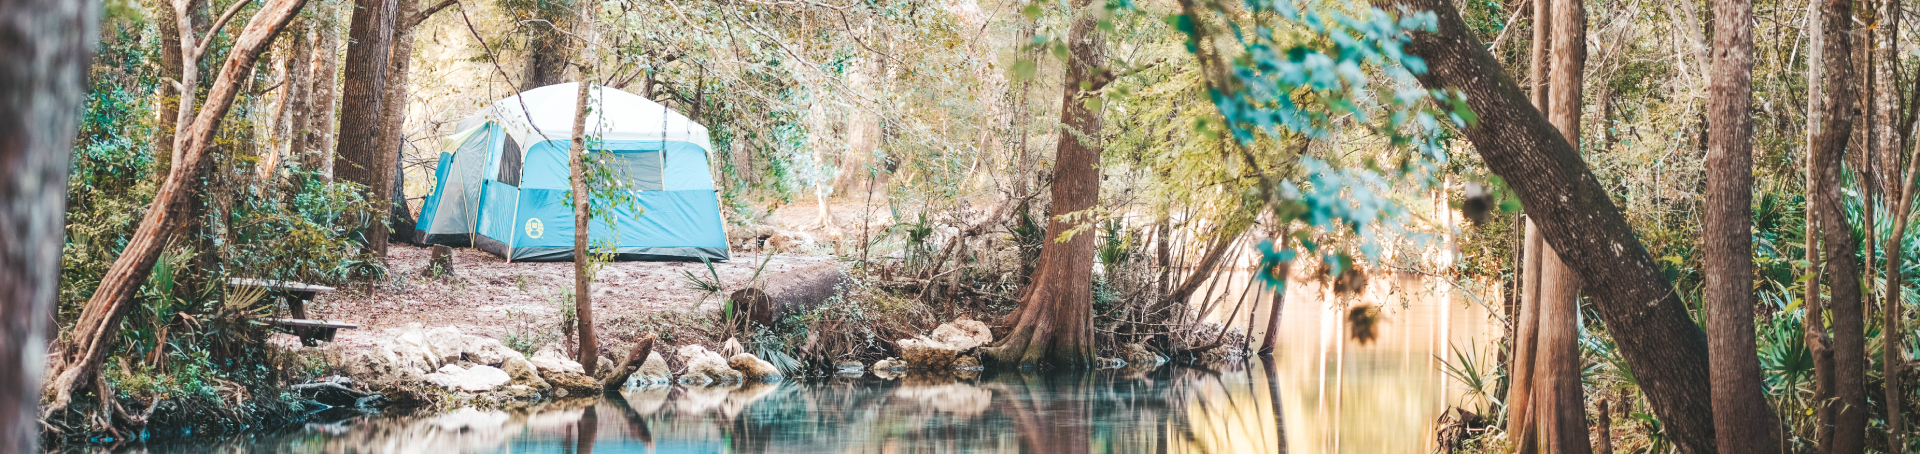 Tent Sites | Ginnie Springs Outdoors | High Springs, FL on cozumel map, silver river state park map, manatee springs map, st. andrews state park map, caladesi island state park map, ichetucknee state park map, vortex springs map, peacock springs map, weeki wachee springs map, john pennekamp coral reef state park map, oscar scherer state park map, ponce de leon springs map, gilchrist county map, poe springs map, telford map, suwannee river state park map, alexander springs map, high springs fl map, long key state park map, the devil's highway map,